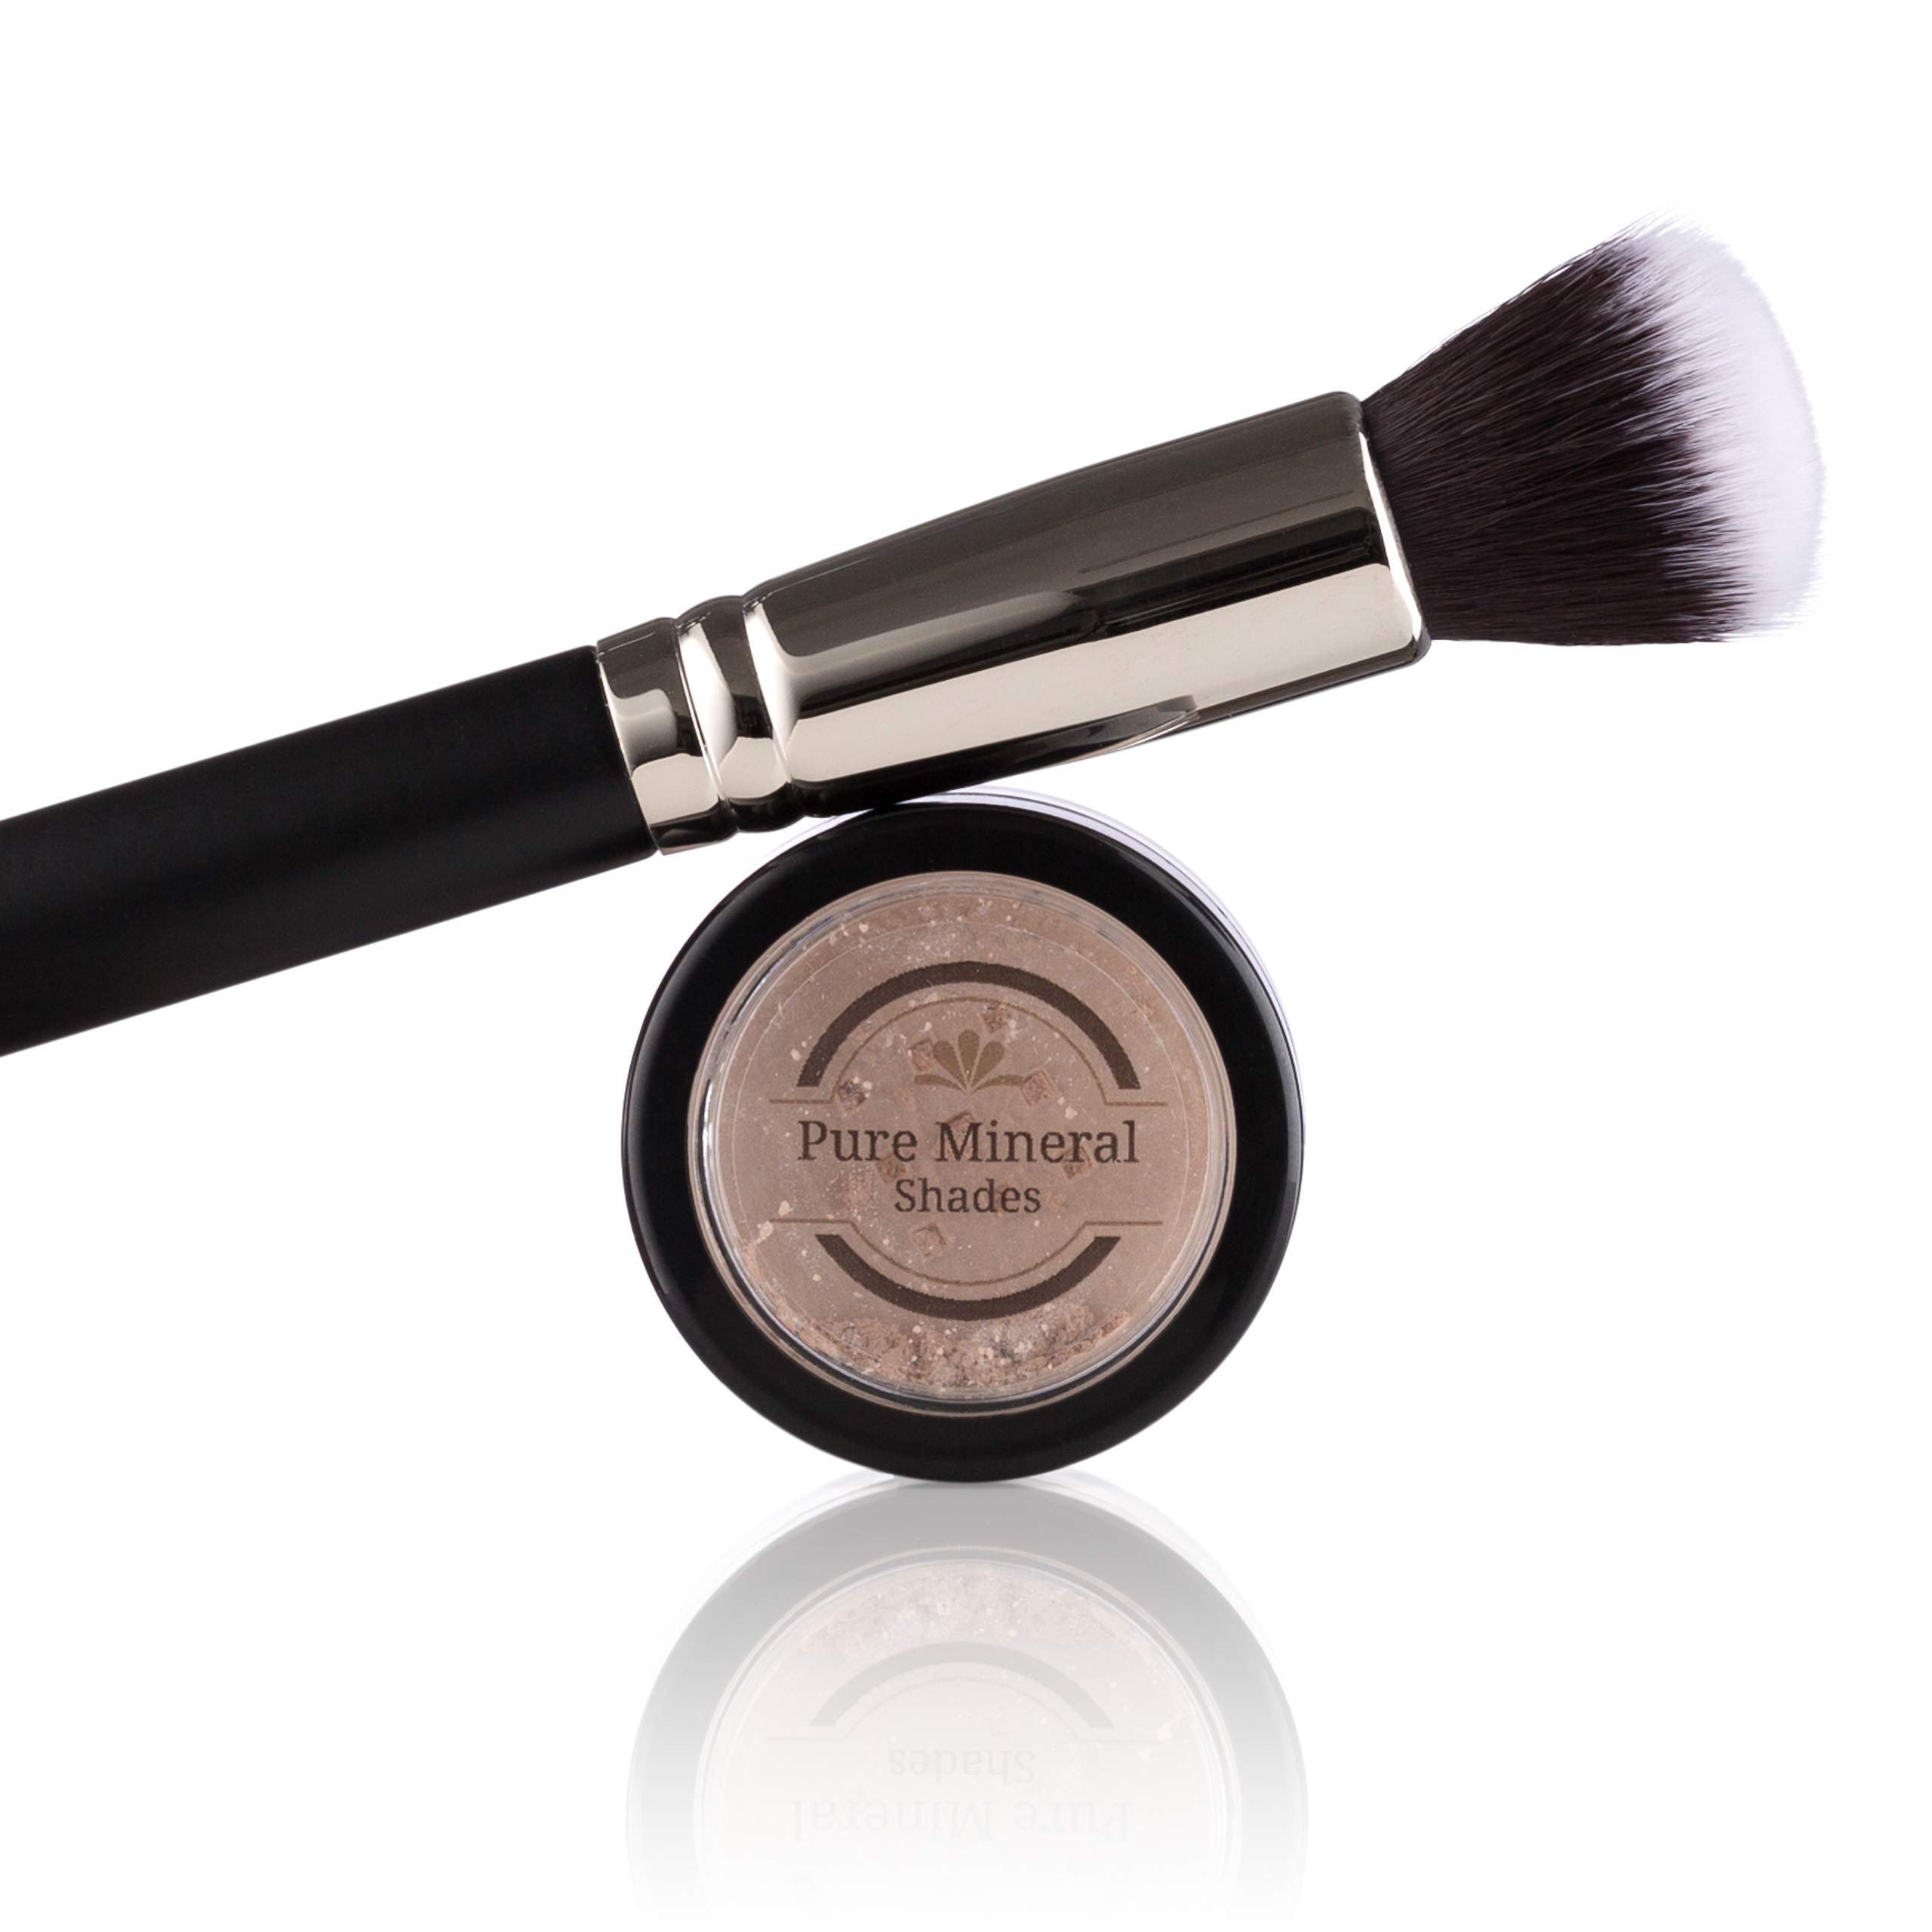 Mineral Highlighter Makeup by NuBeauti - Loose Powder With Brush Kit - Adds Natural Facial Contour - Highlighting Illuminator for Face and Body - Professional Sleek Results - Naked Glow 1.5 grams